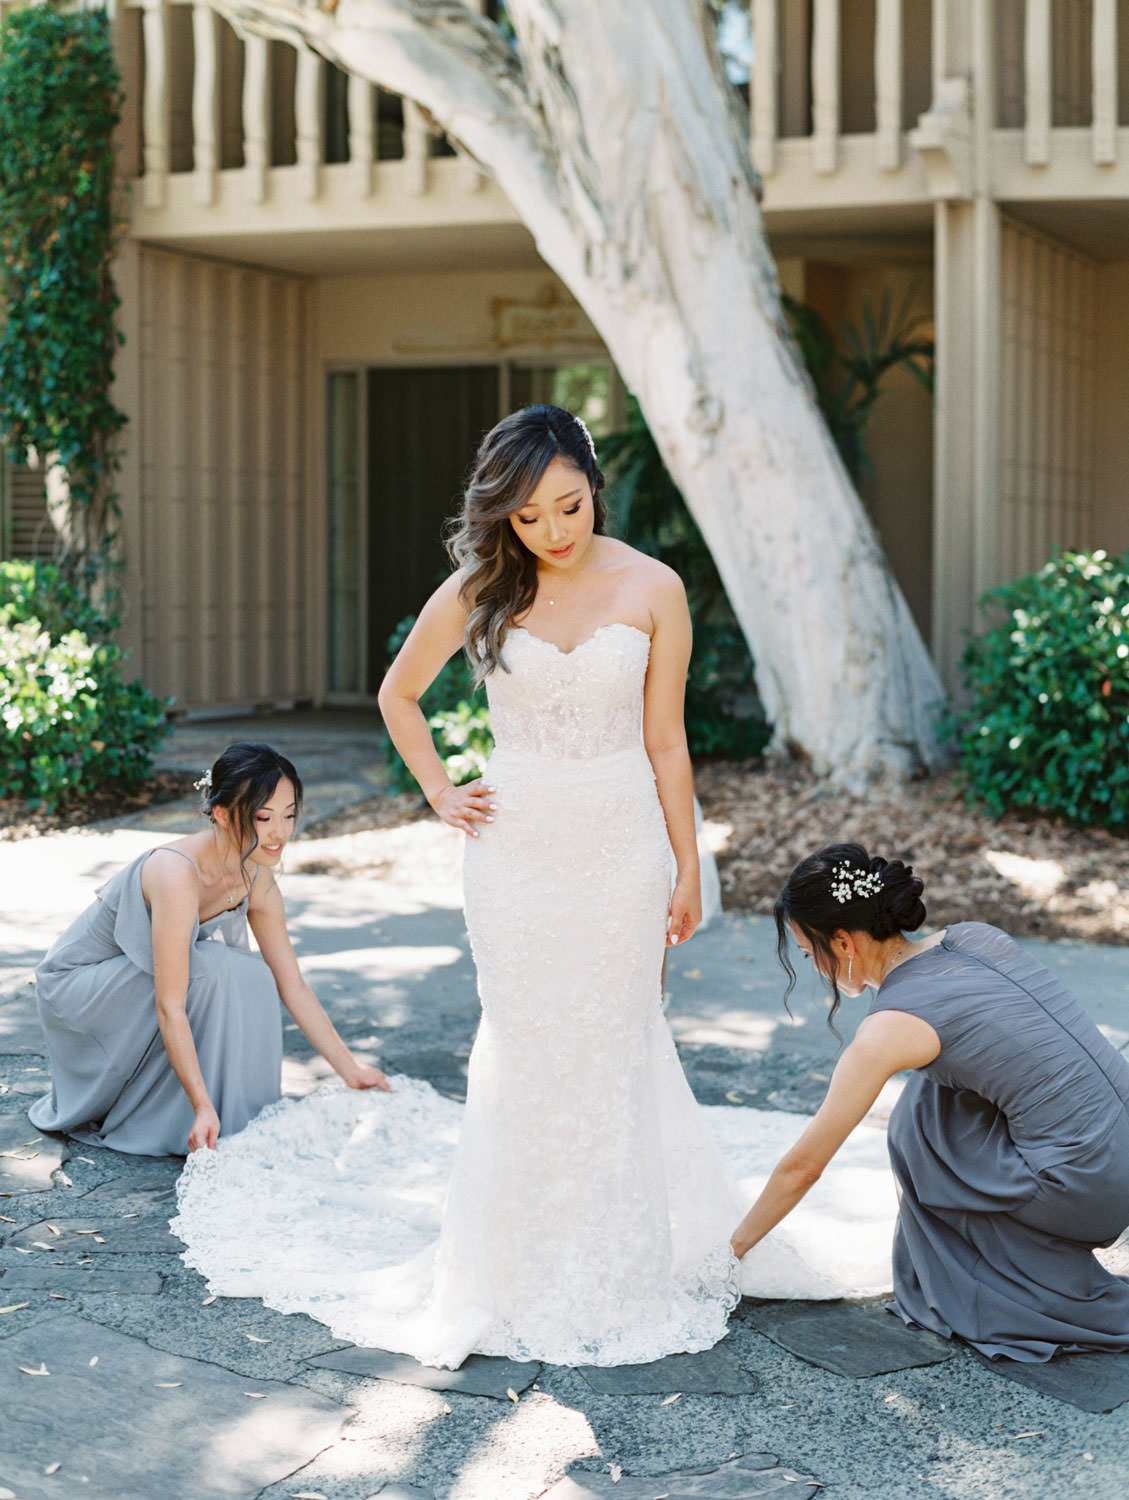 Bride's mother and sister helping her into her Martina Liana gown from The White Flower Bridal Boutique. Wedding at Rancho Bernardo Inn. Film photo by Cavin Elizabeth Photography